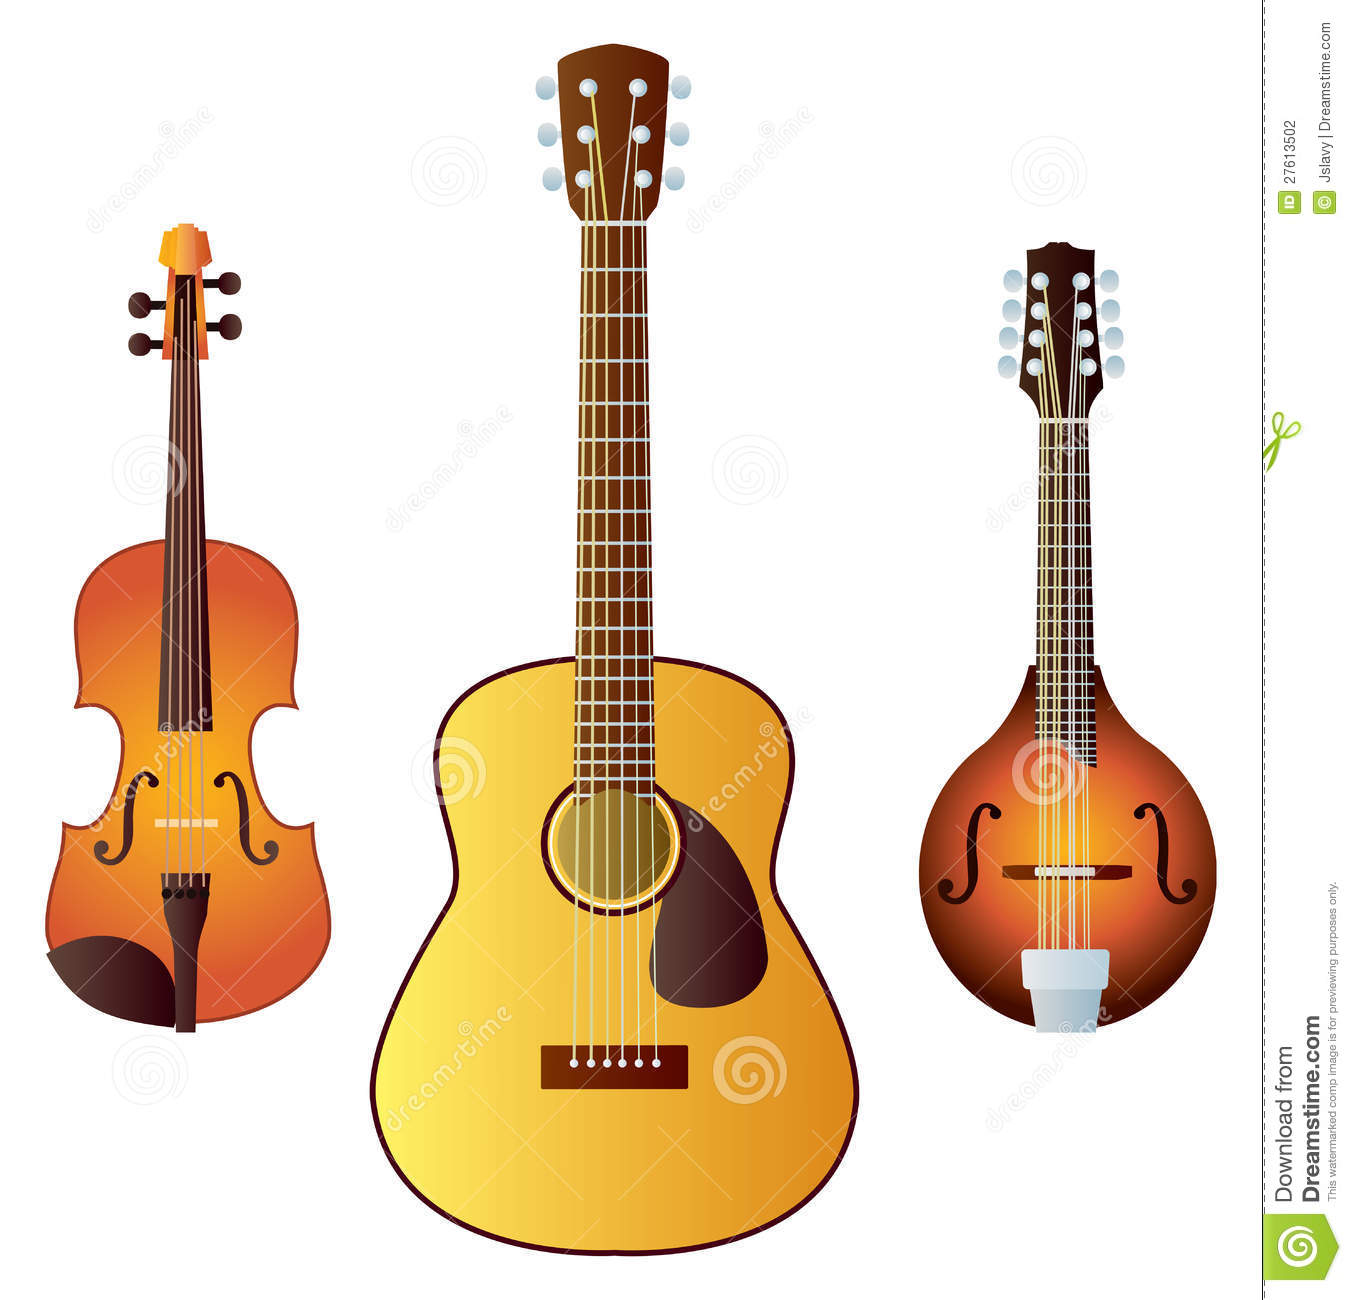 Three common western stringed instruments - a violin, a guitar and a ...